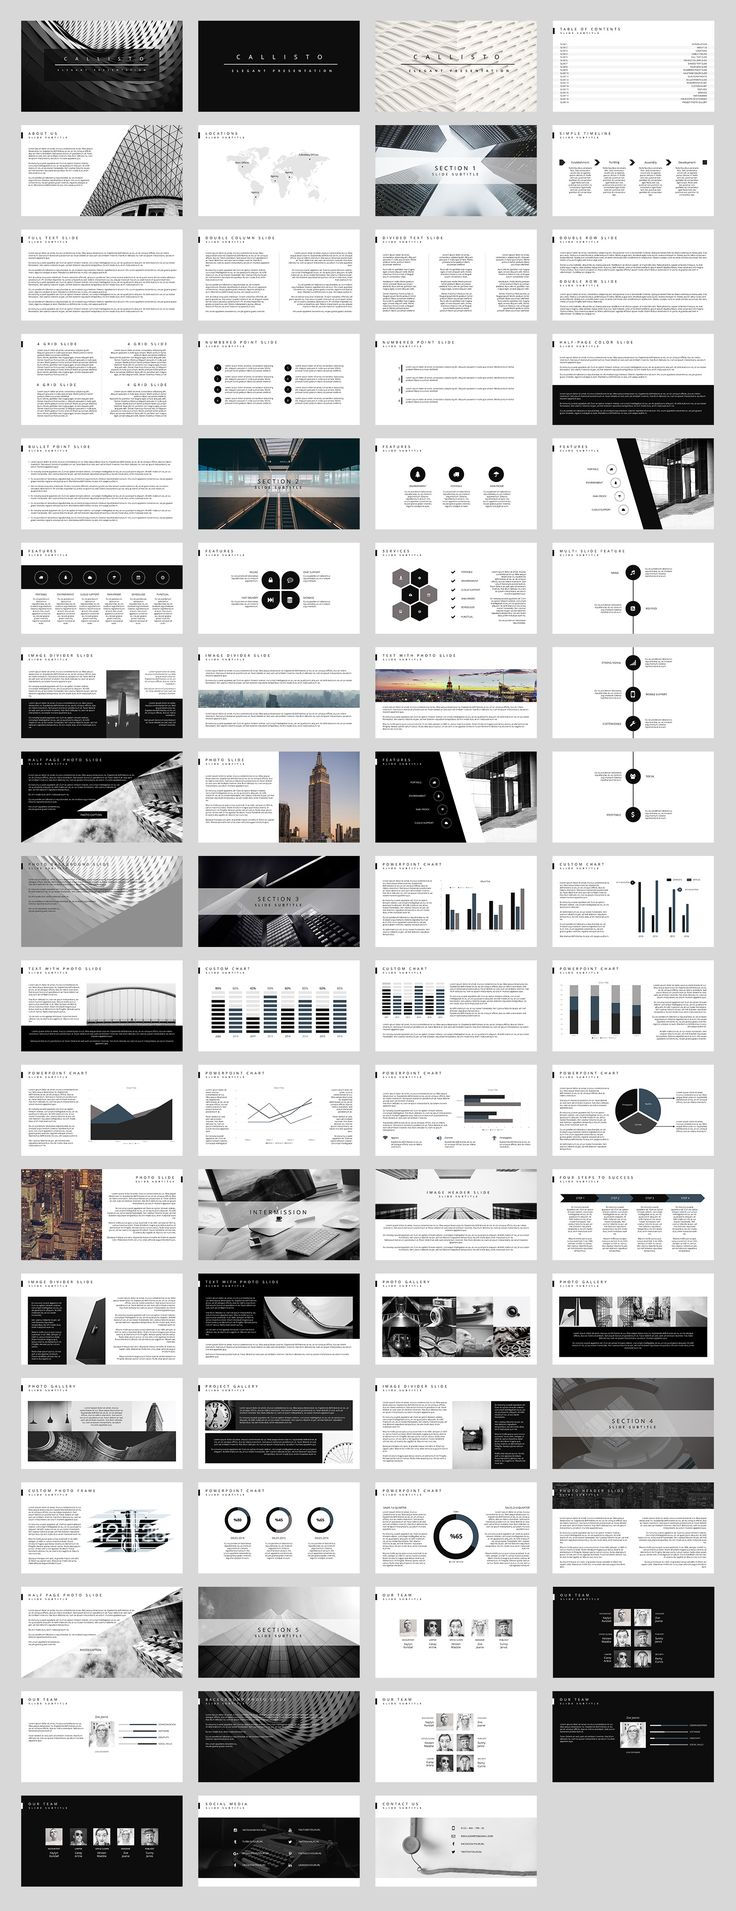 52 best best presentation templates images on pinterest callisto is a clean and simple business presentation template for powerpoint toneelgroepblik Image collections